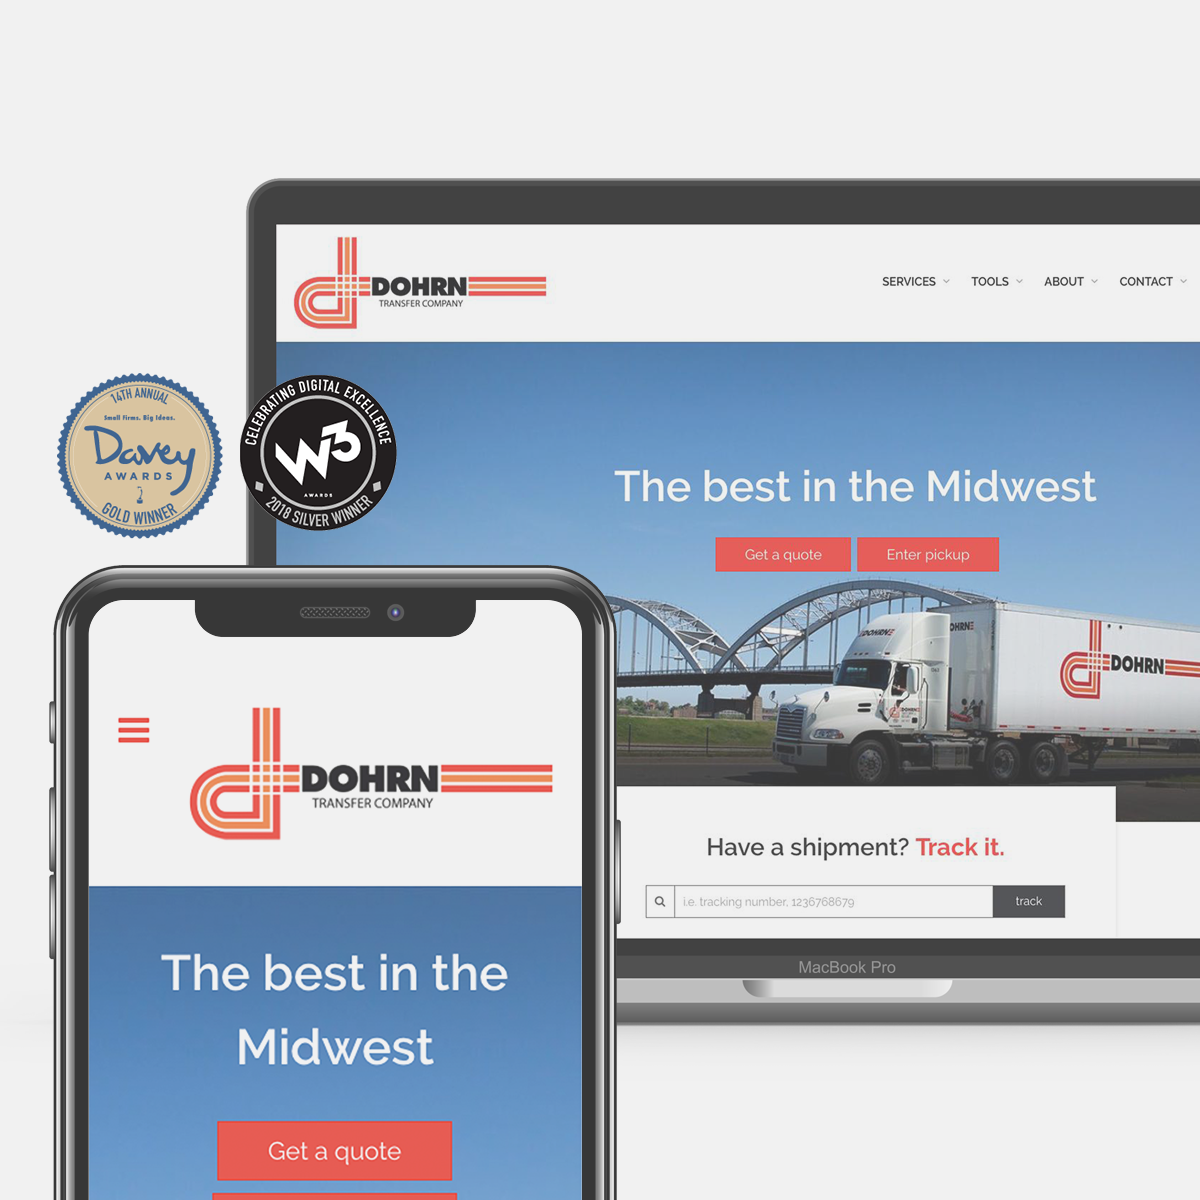 Terrostar's redesign of Dohrn Transfer's website won Gold from the Davey Awards